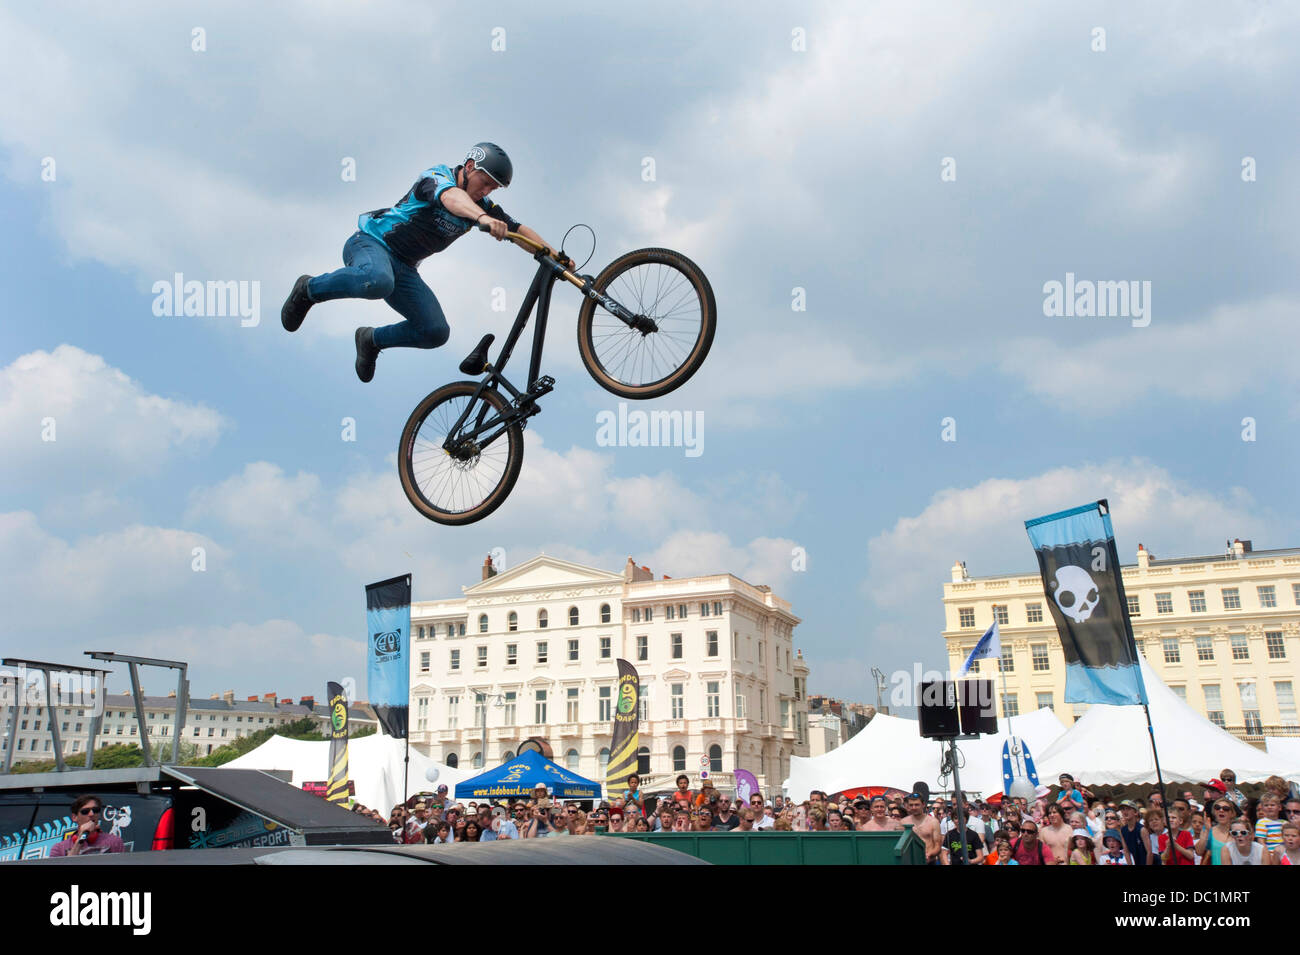 BMX sporting action at a beach festival in Brighton England. - Stock Image